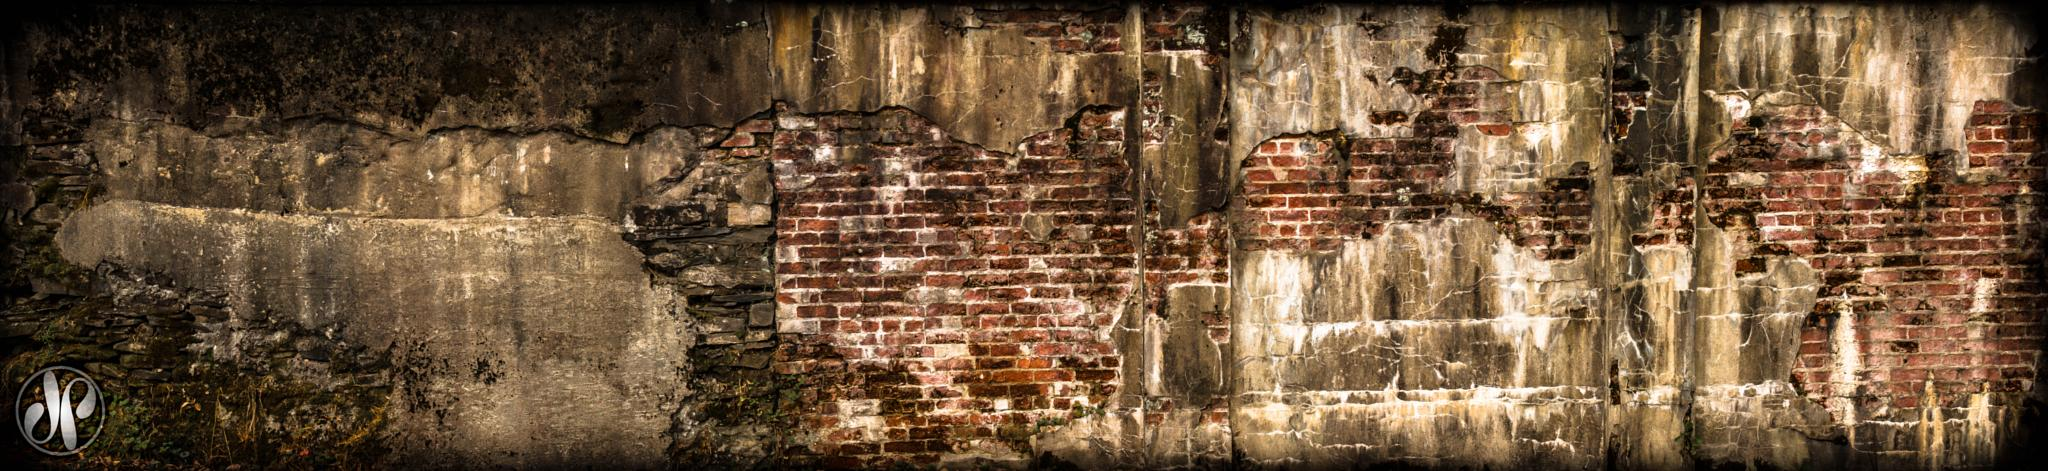 Aged Wall by Jared Pease